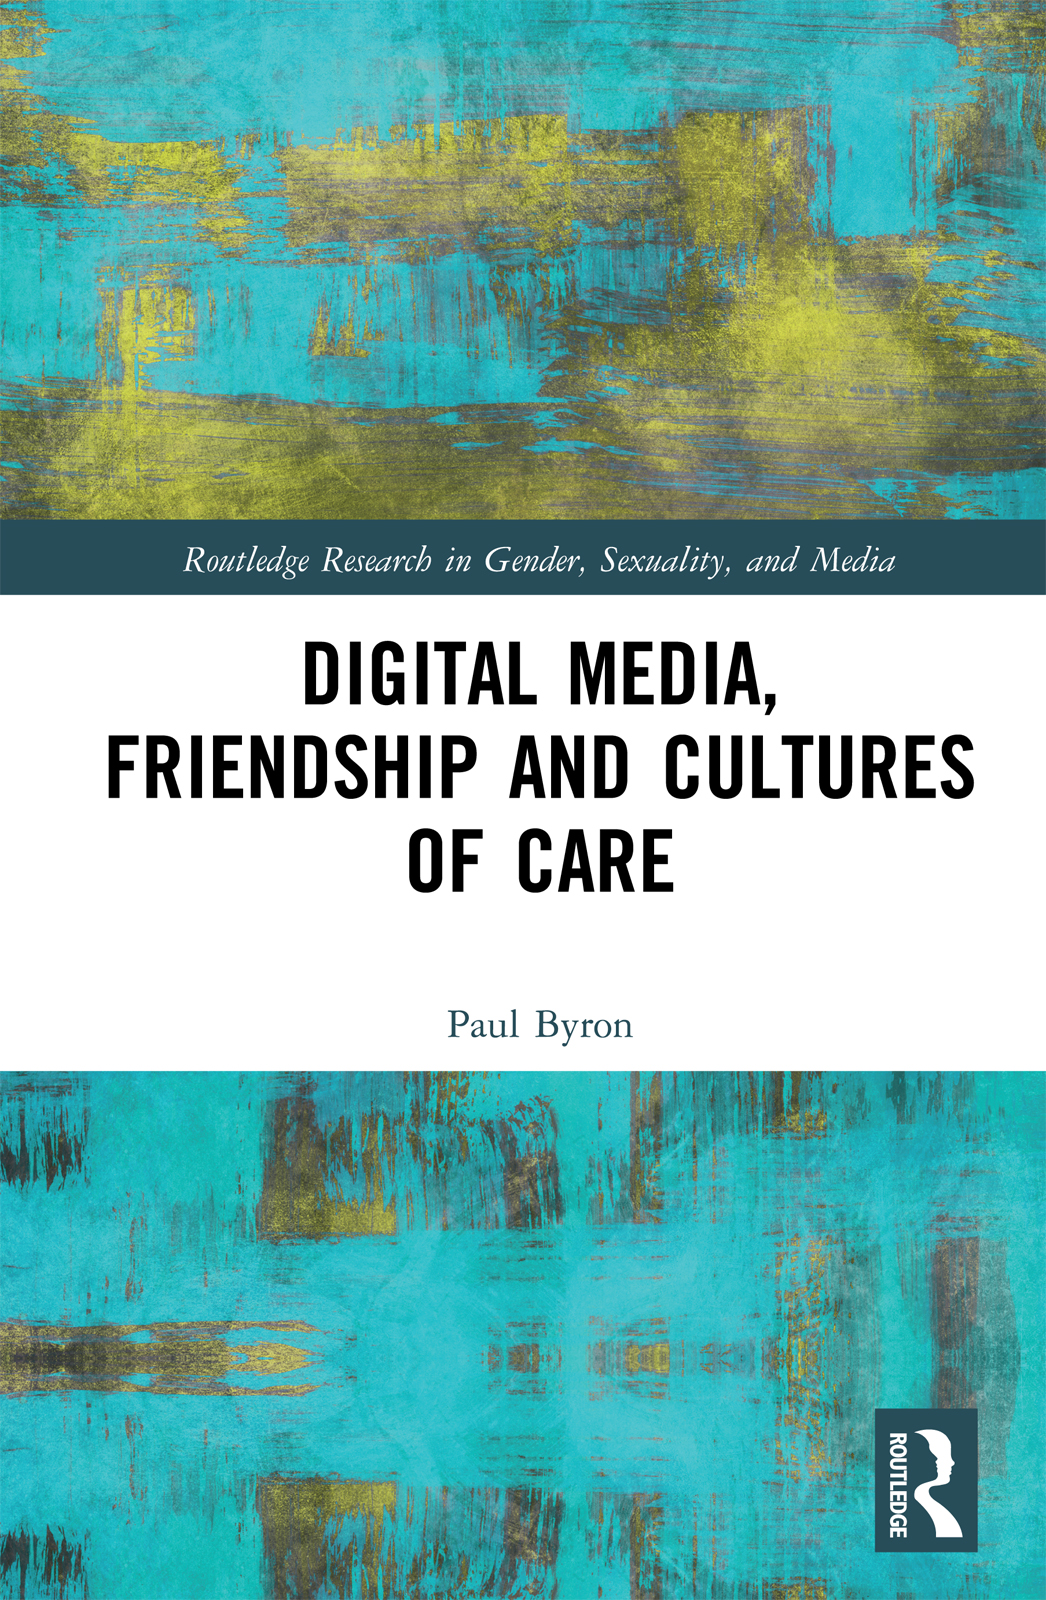 Digital Media, Friendship and Cultures of Care